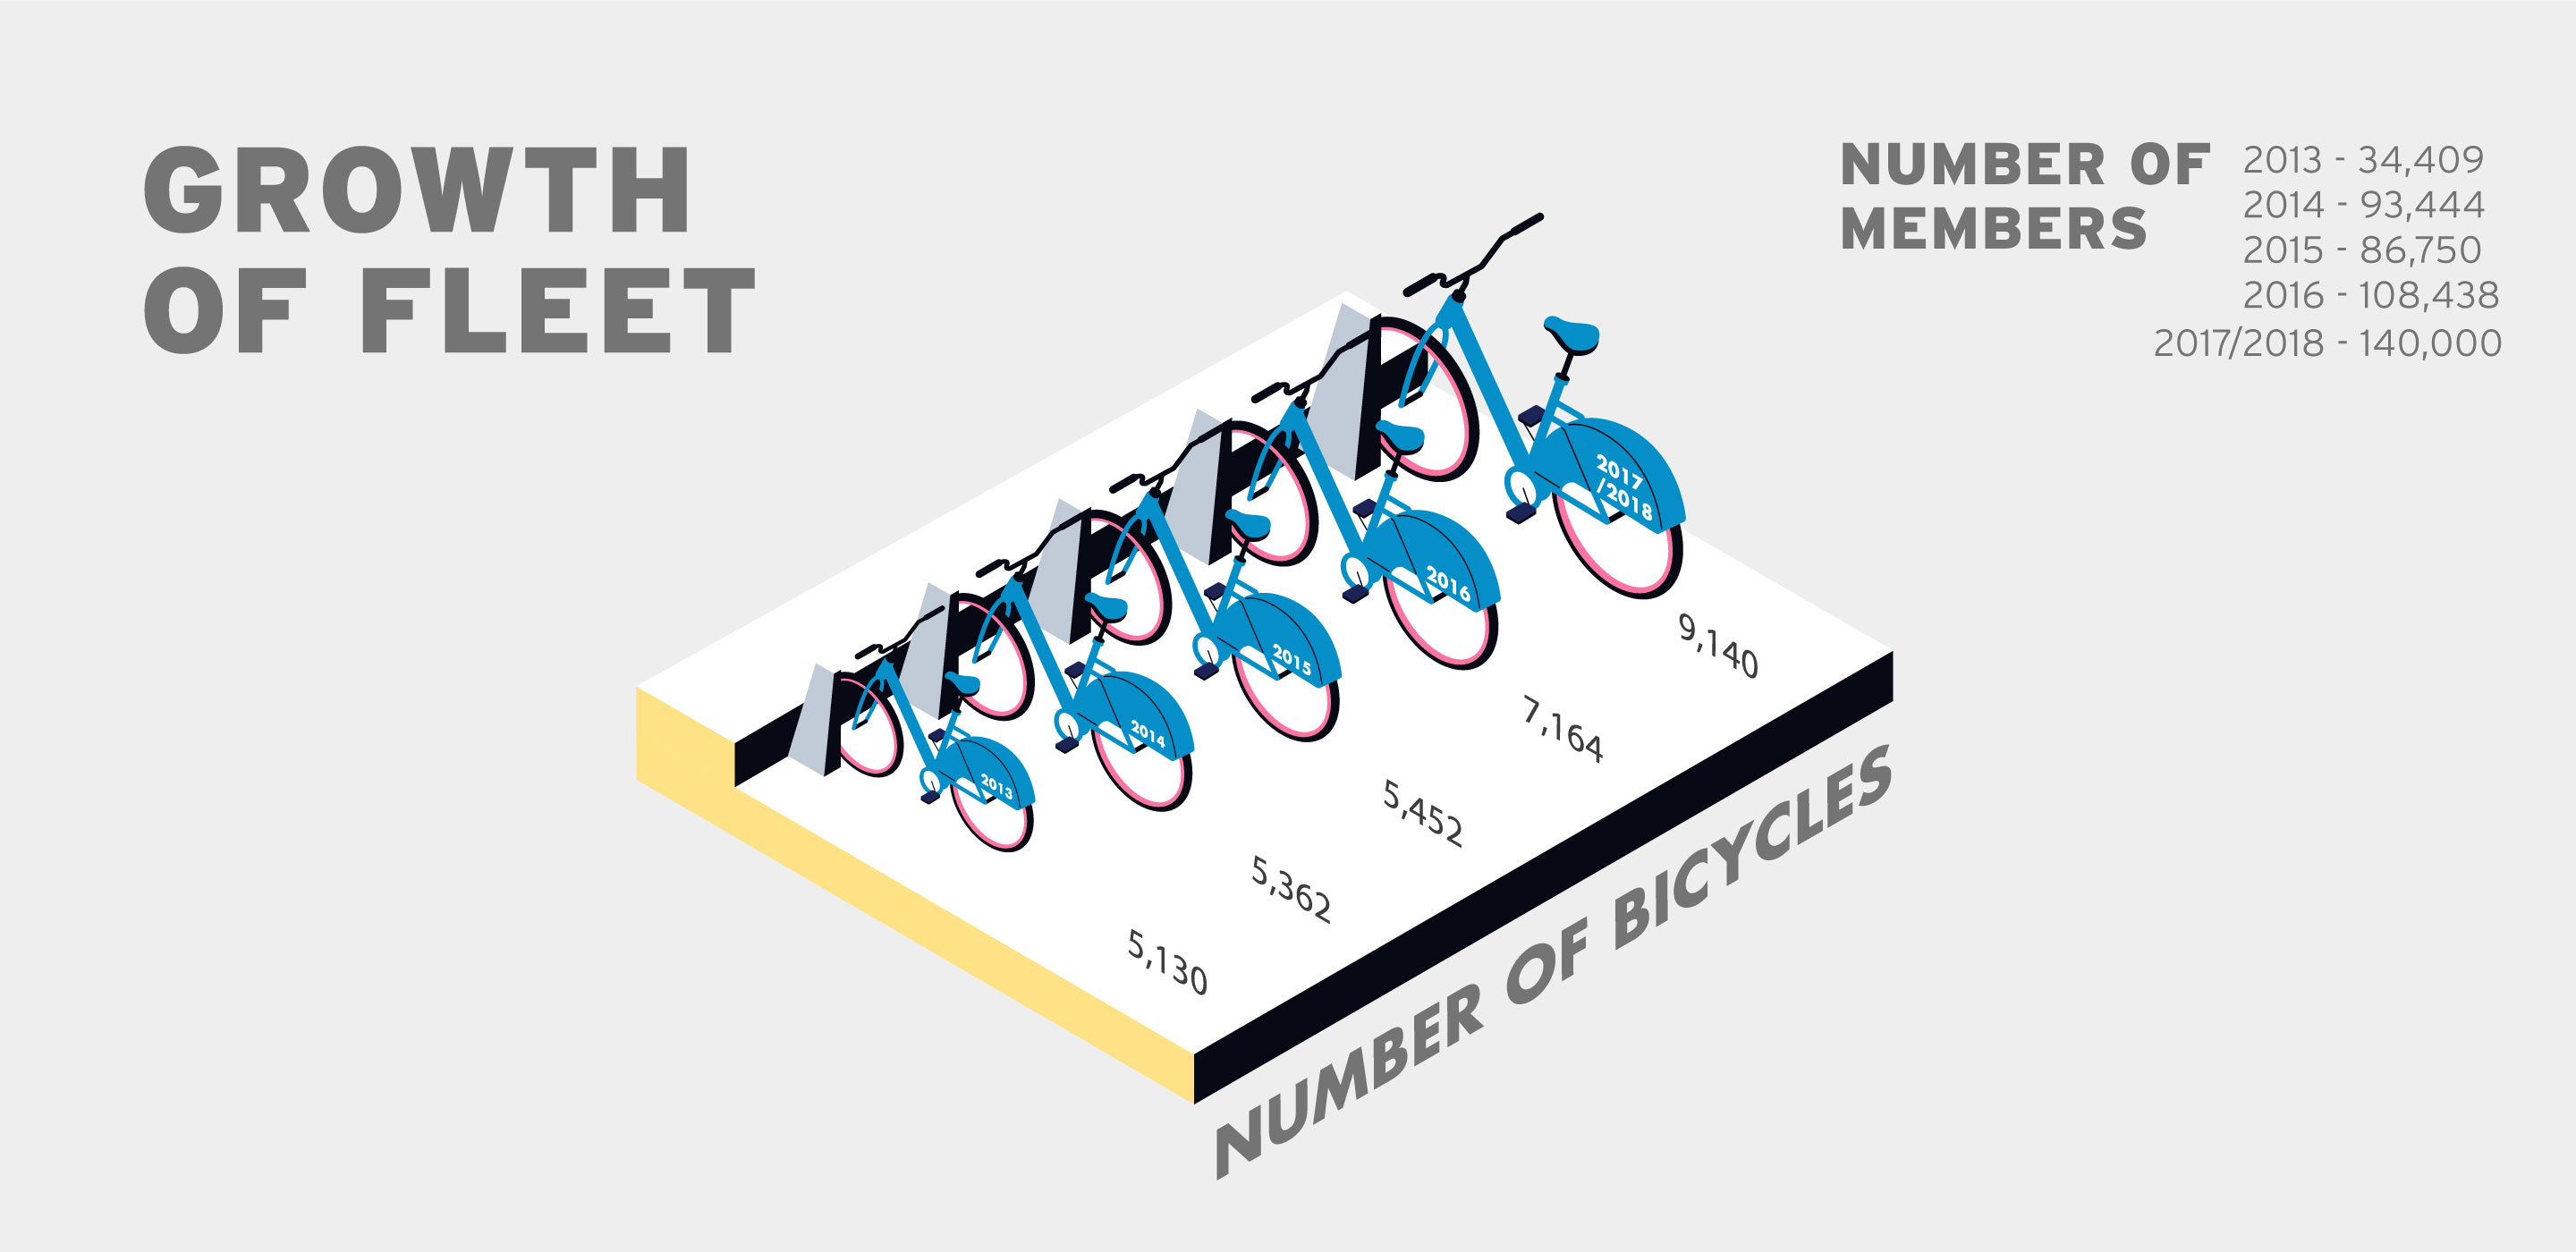 Infographic showing growth citibike fleet over time